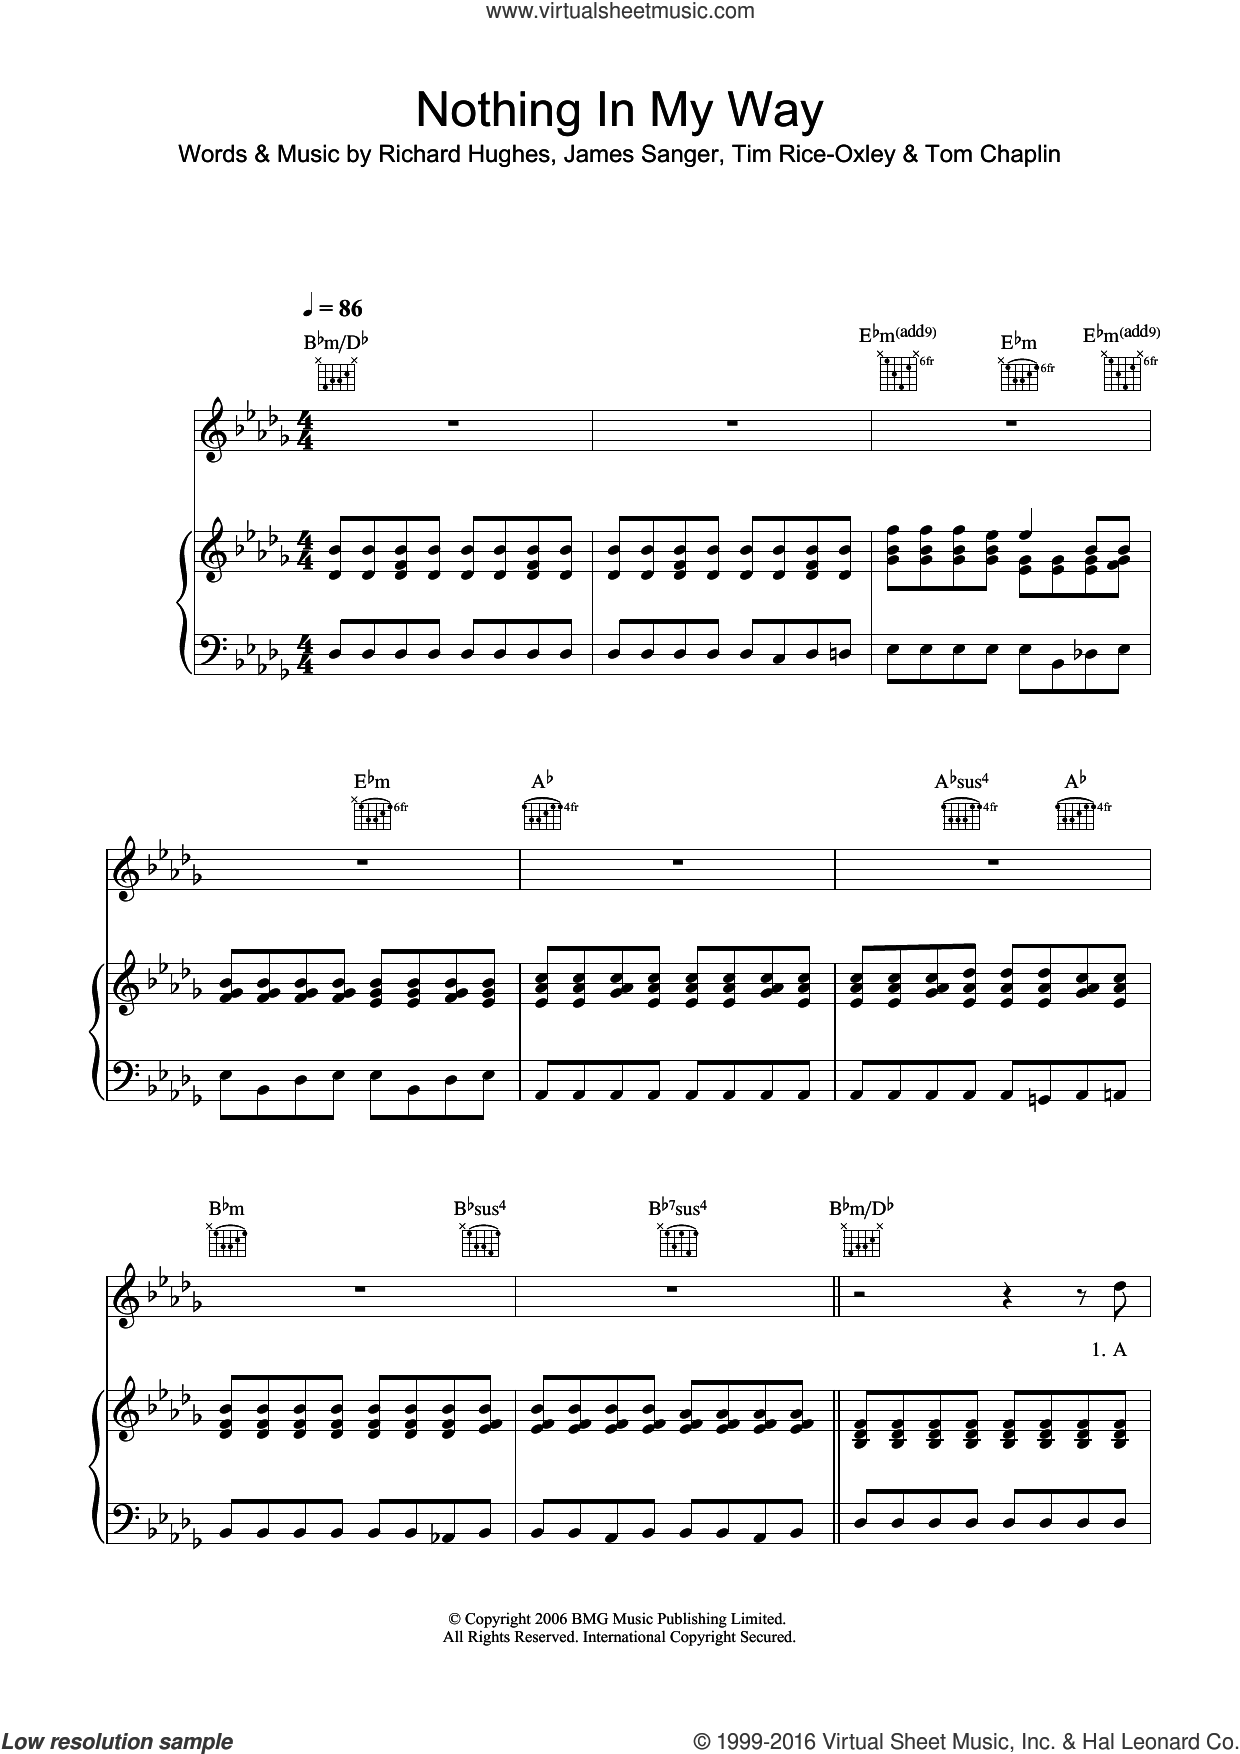 Nothing In My Way sheet music for violin solo by Tim Rice-Oxley, James Sanger, Richard Hughes and Tom Chaplin, intermediate skill level